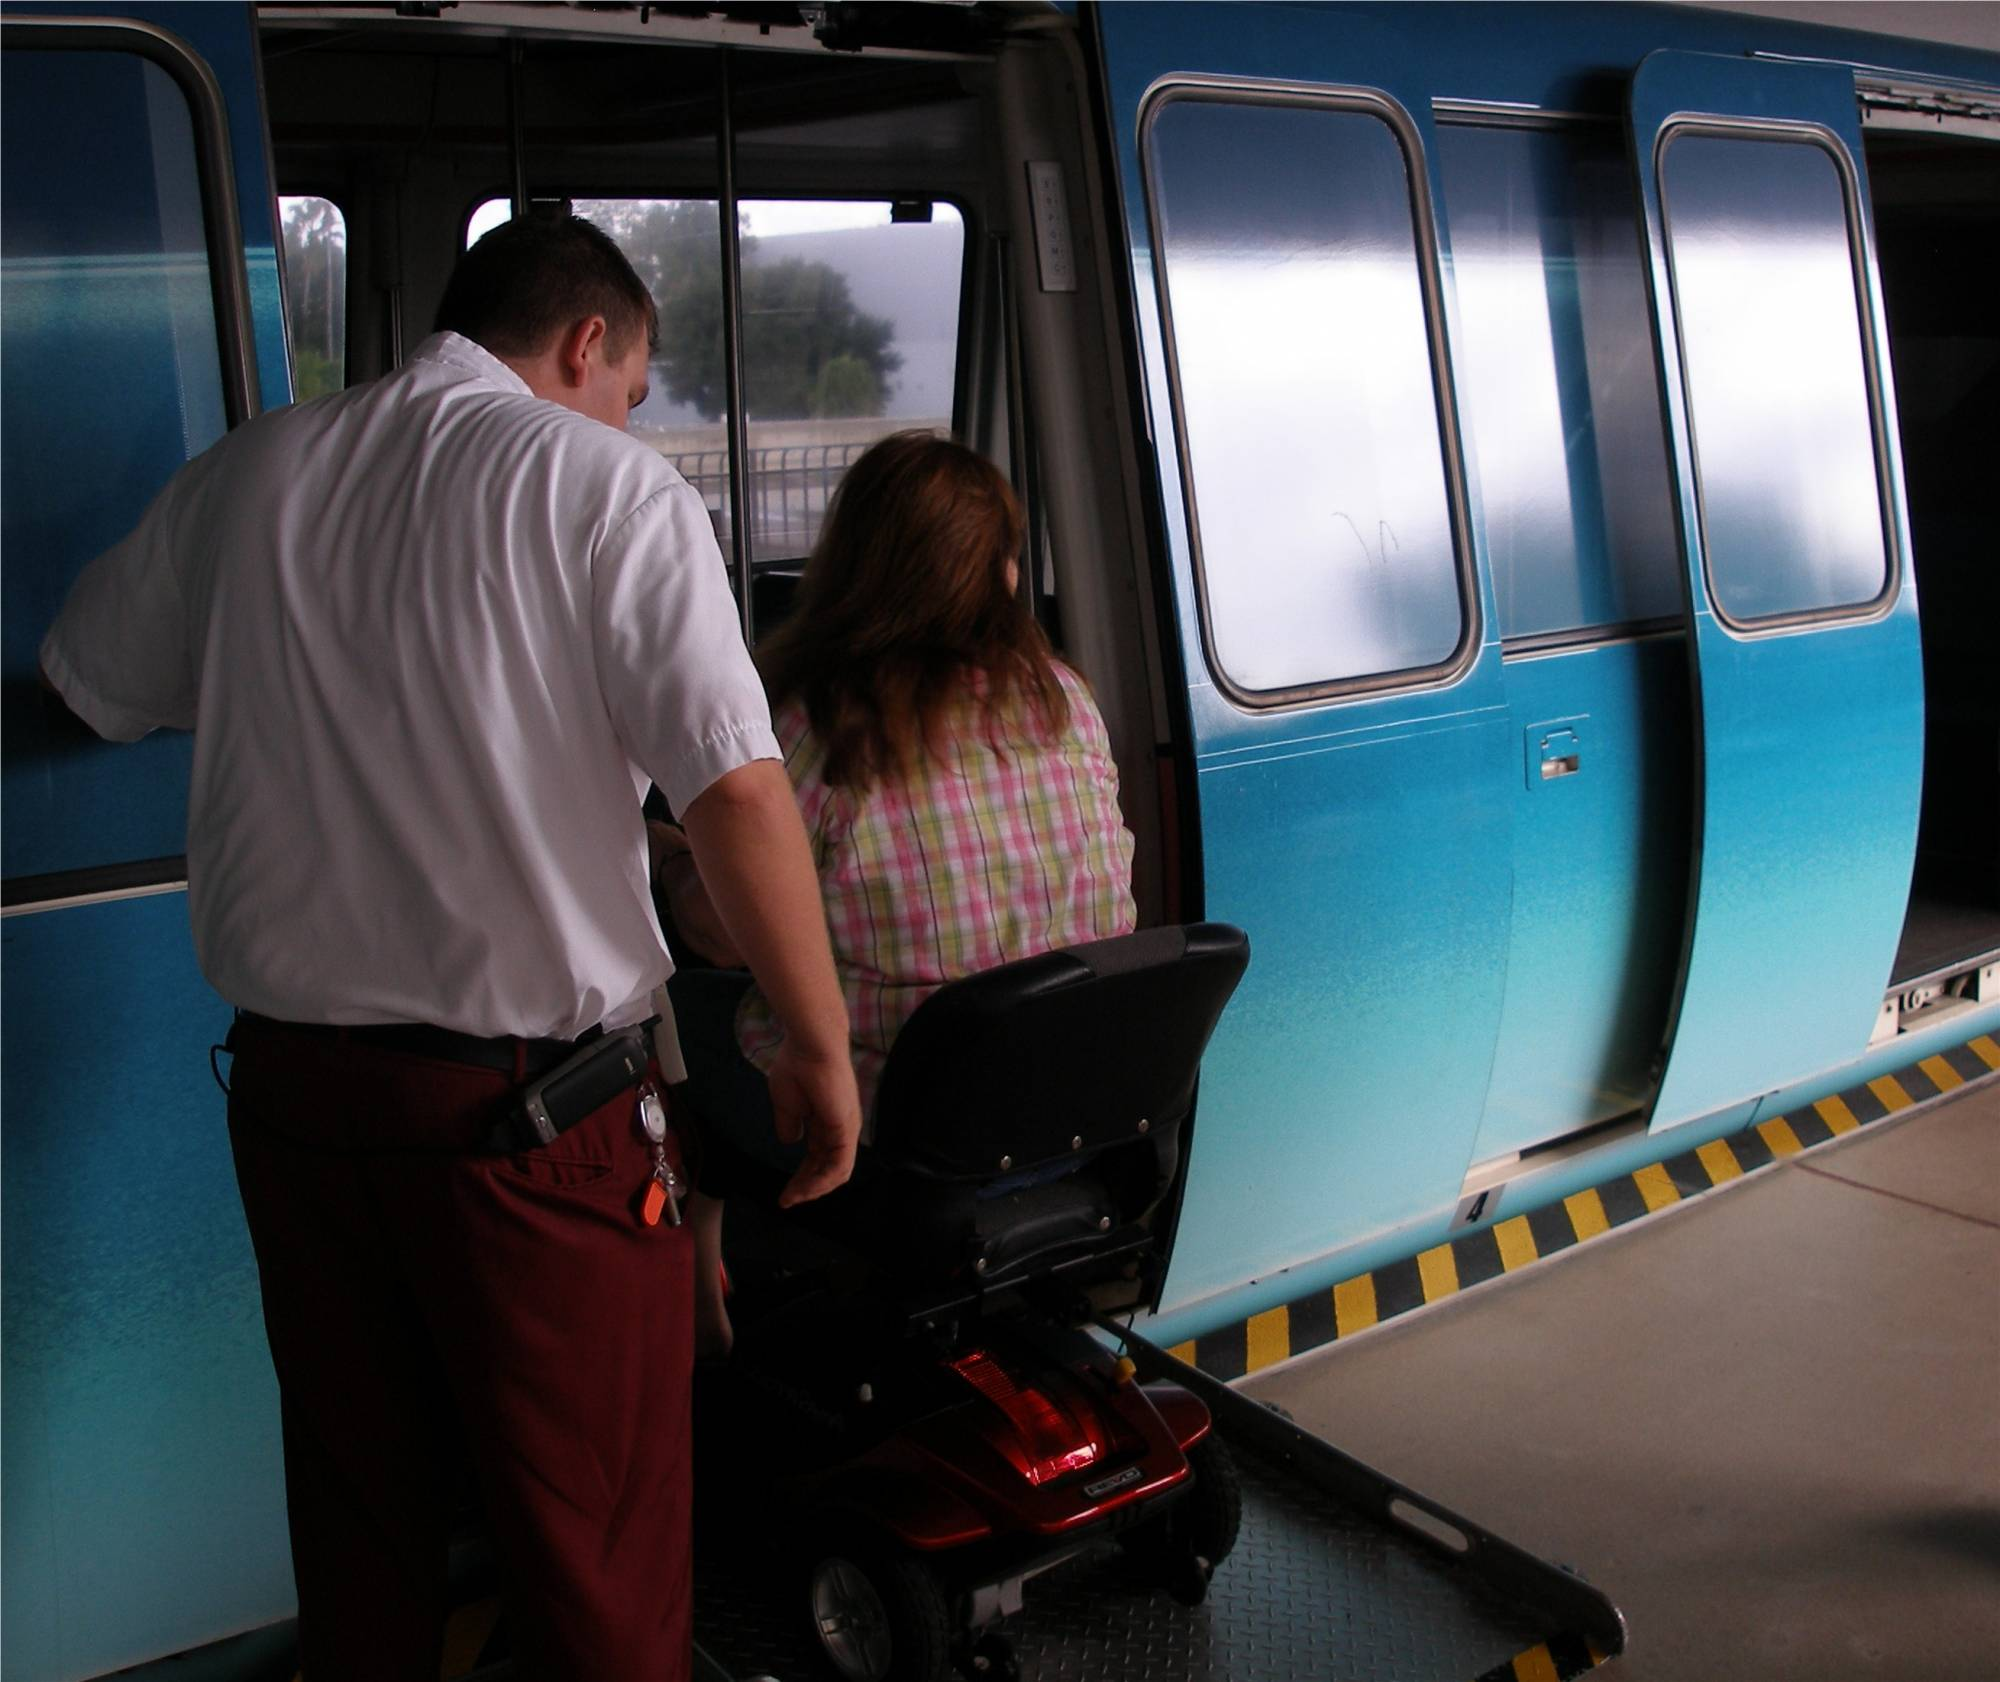 Getting on the Monorail photo